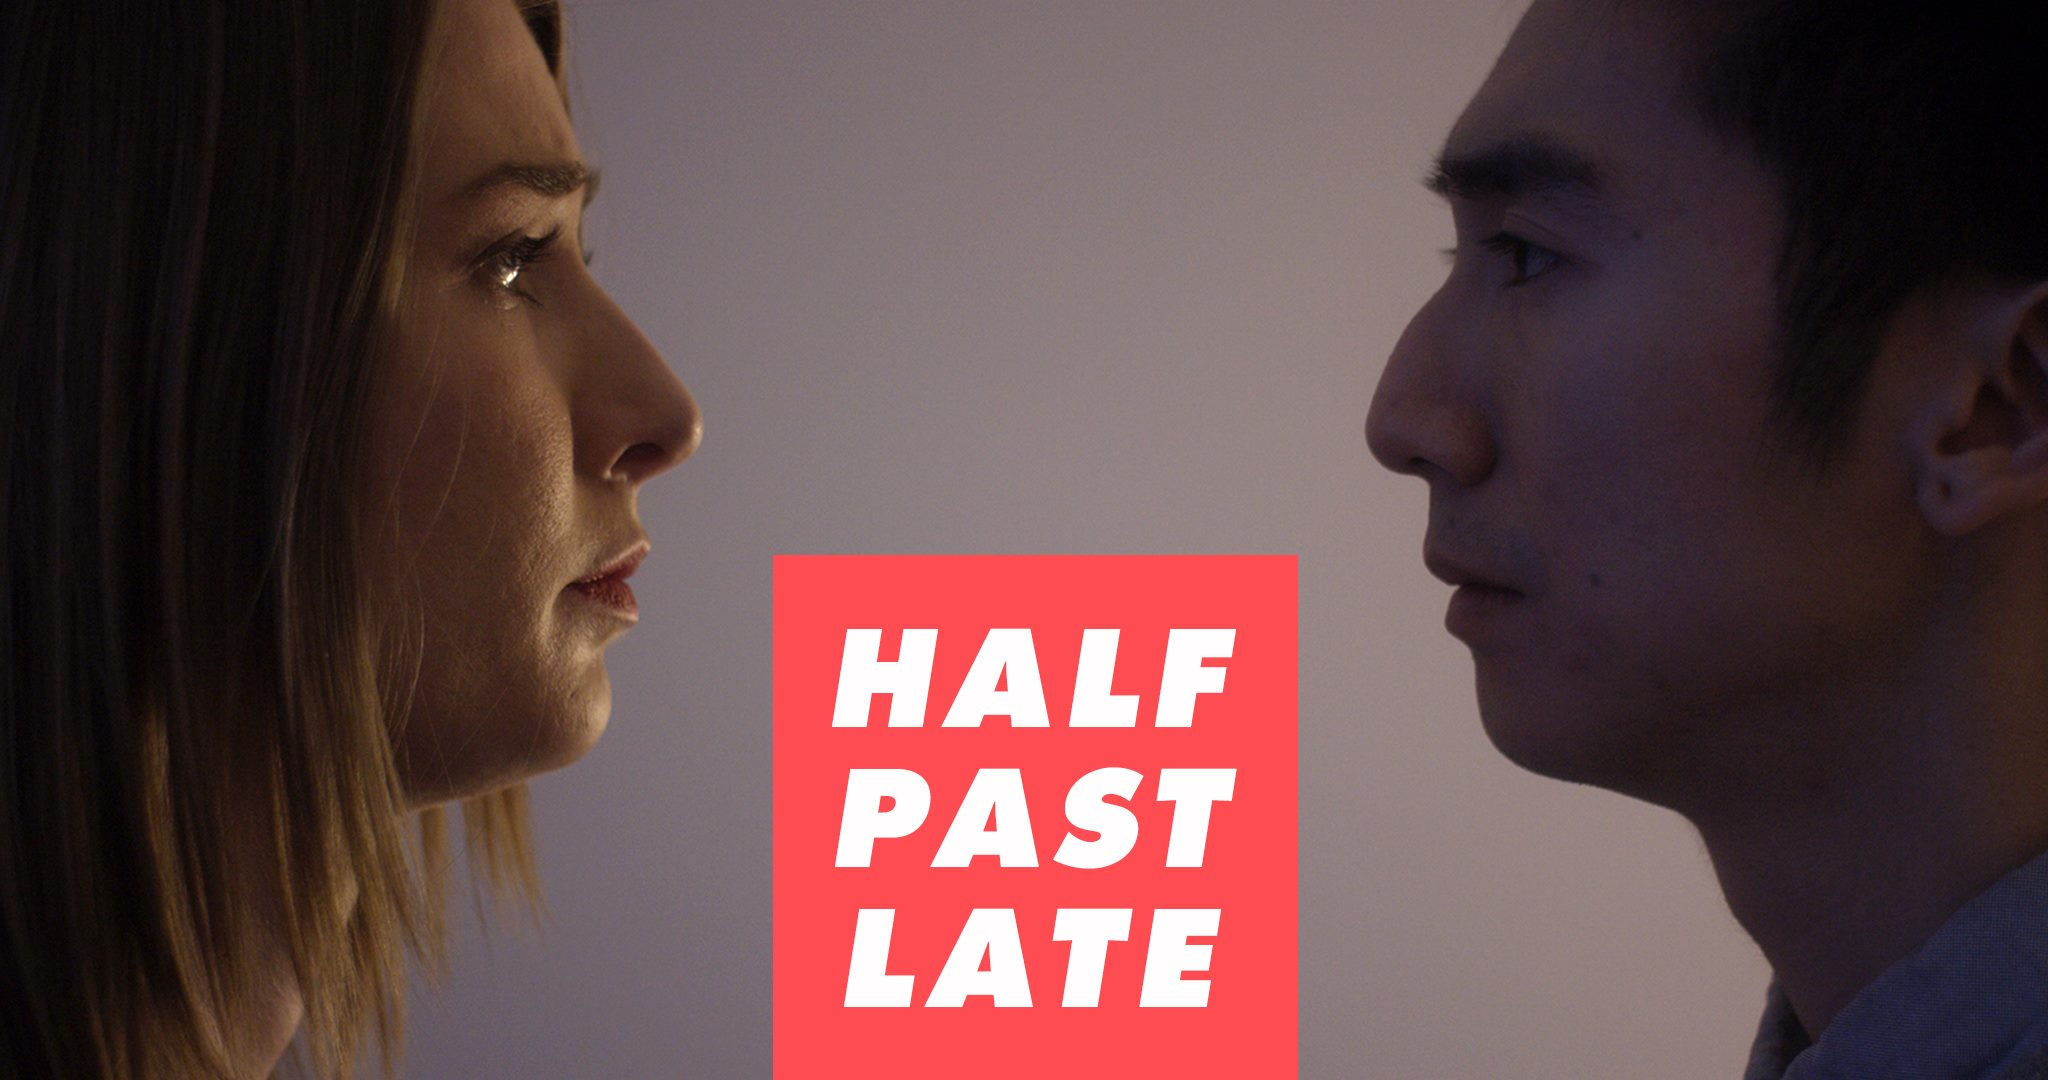 Half Past Late on Storyhive – It's the perfect time to vote!